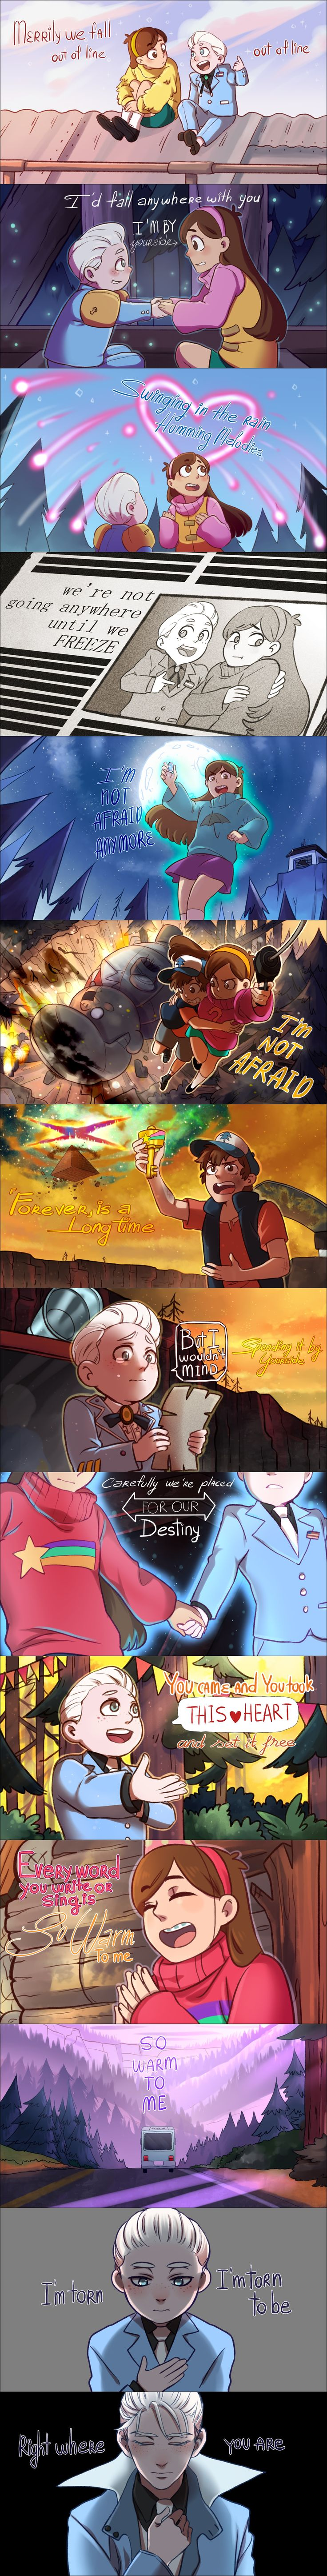 "Part 1 Gravity Falls ""I Wouldn't Mind"" by Tanosan96"